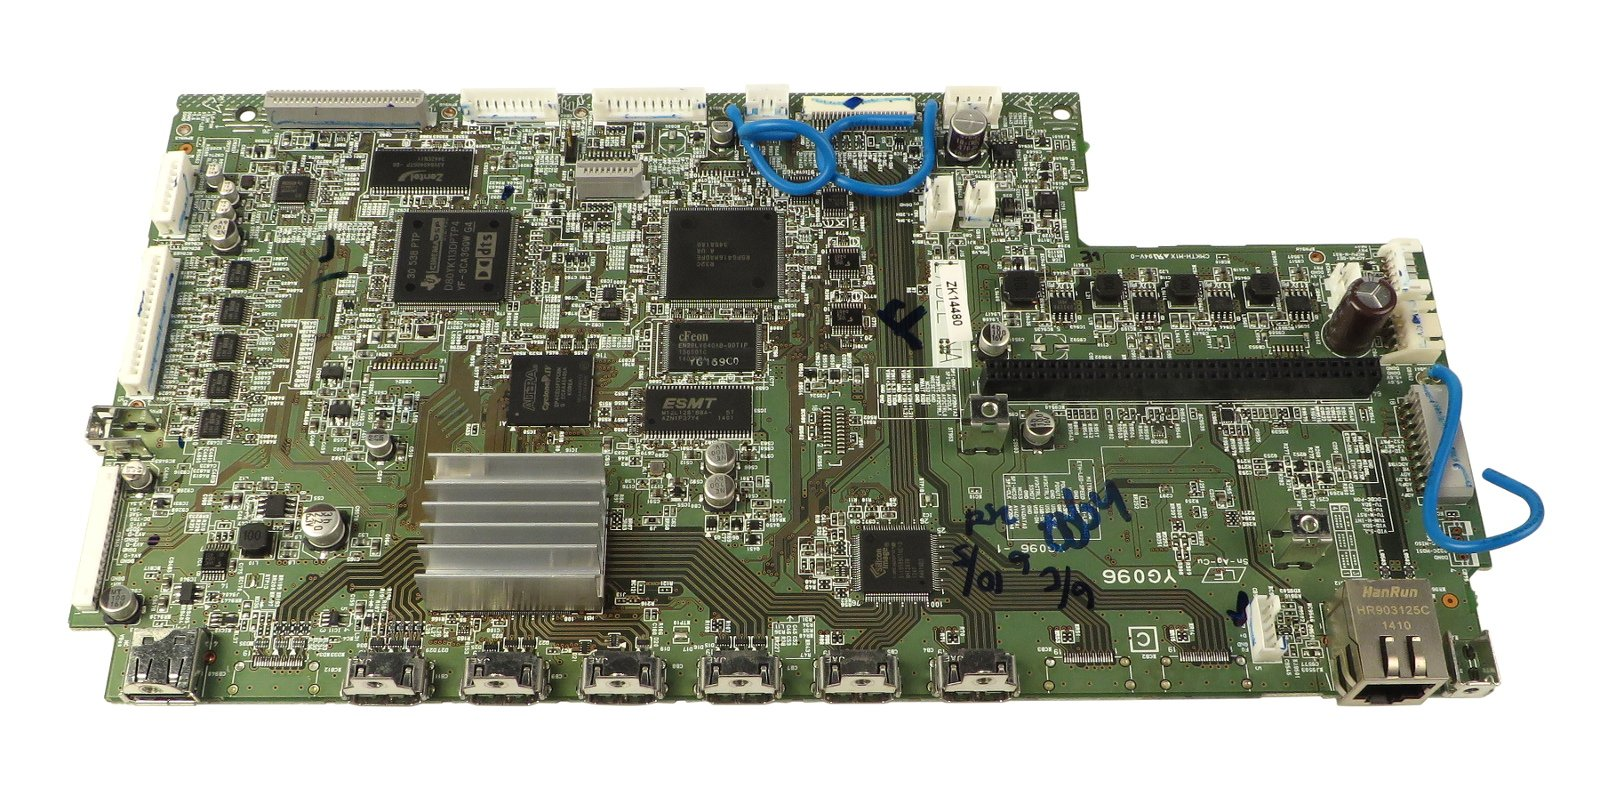 HDMI PCB Assembly for RX-V677 and RX-A740 (REFURBISHED)